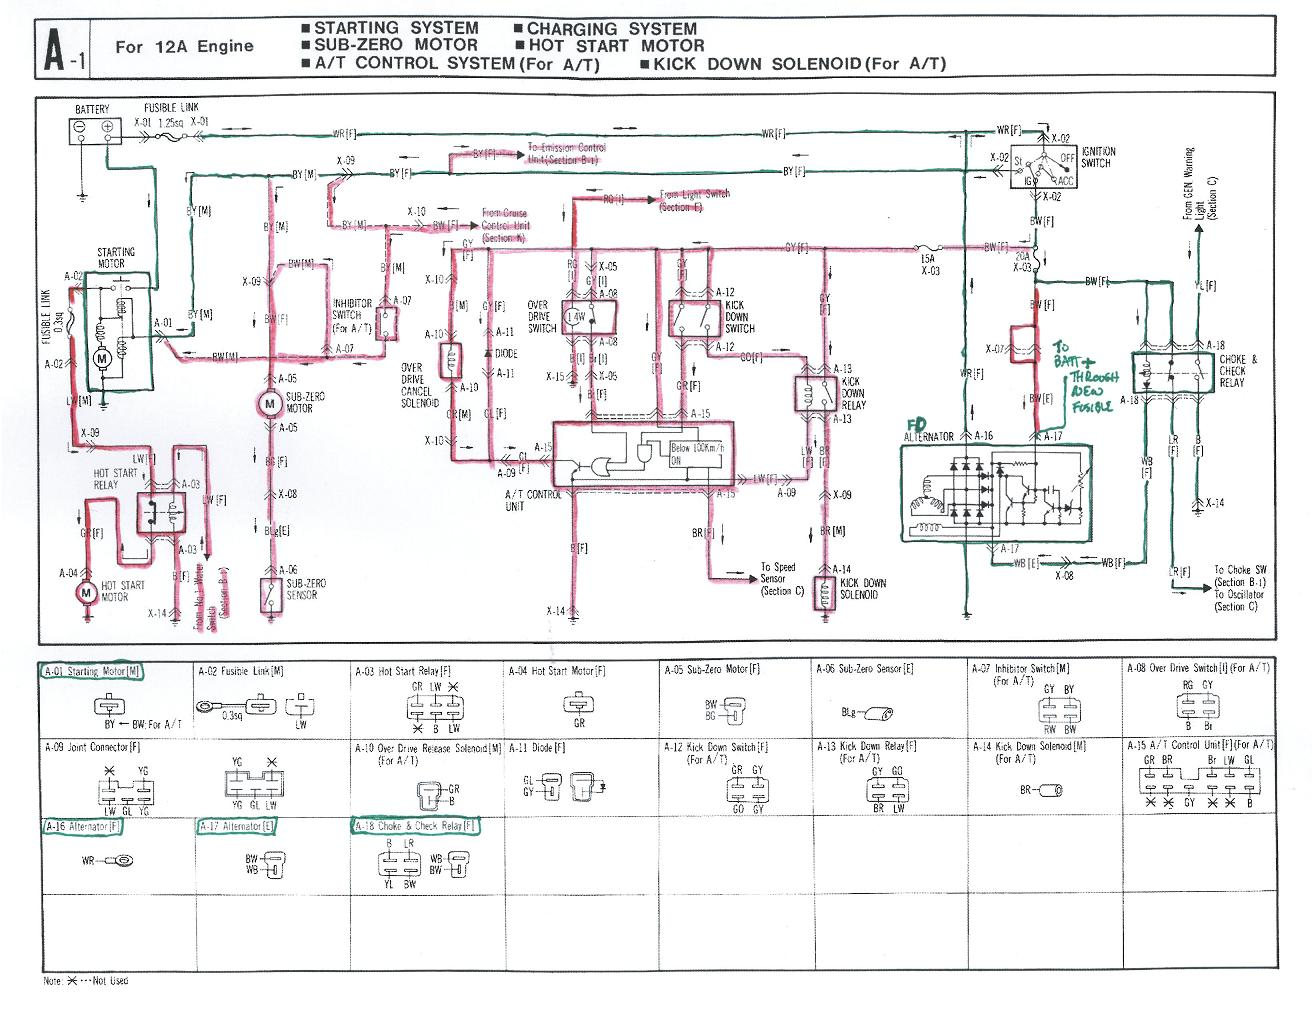 hight resolution of time for re wiring the entire harness 84gs naomi 2005 chrysler 300c spark plug wire diagram